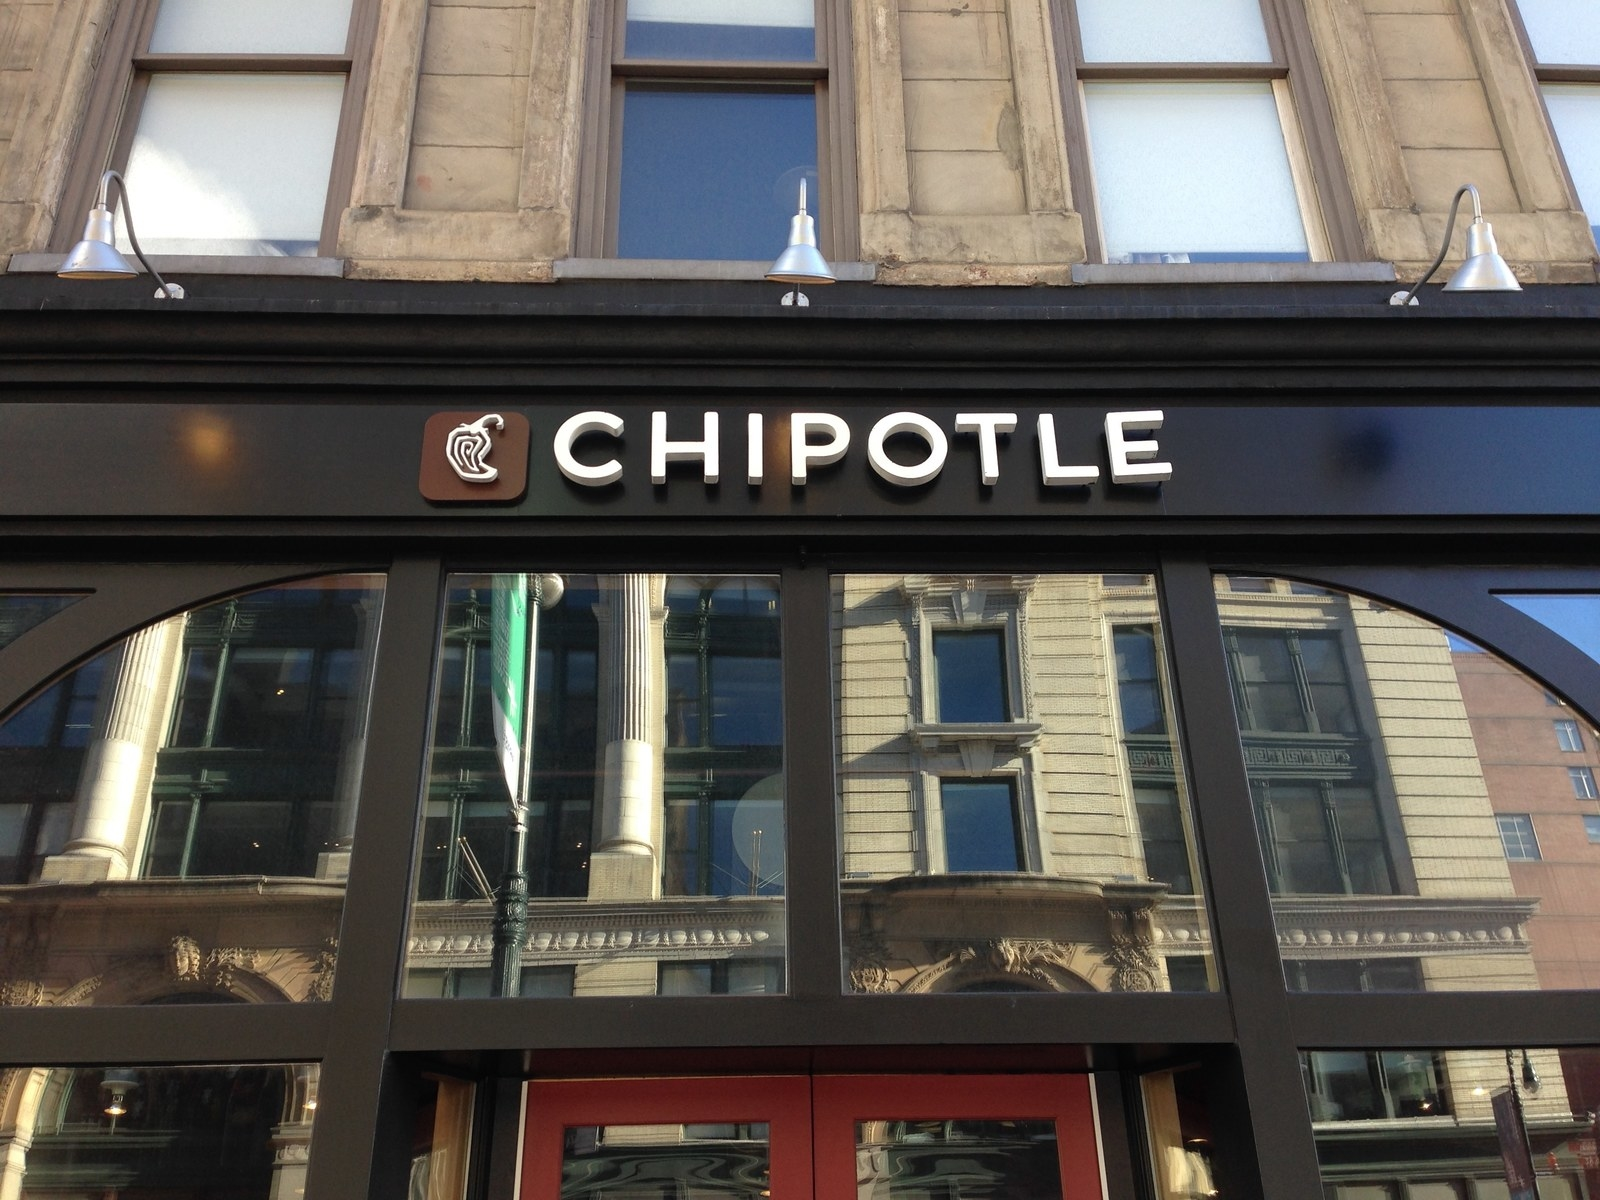 Chipotle Says Its Payment System May Have Been Hacked